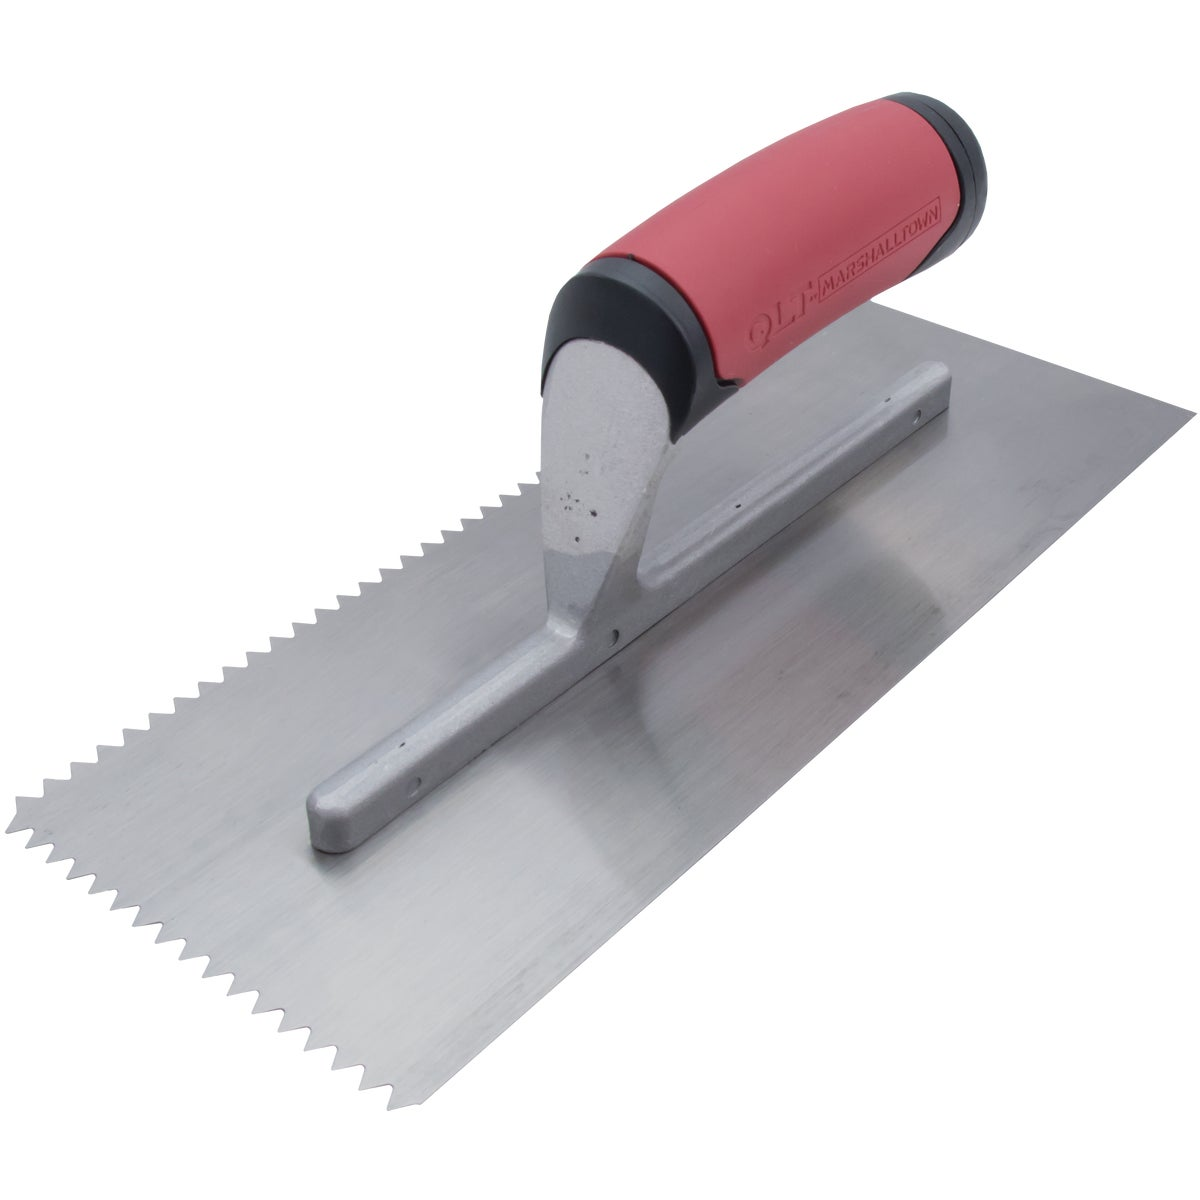 "NT676 1/4"" NOTCH TROWEL - 15676 by Marshalltown Trowel"